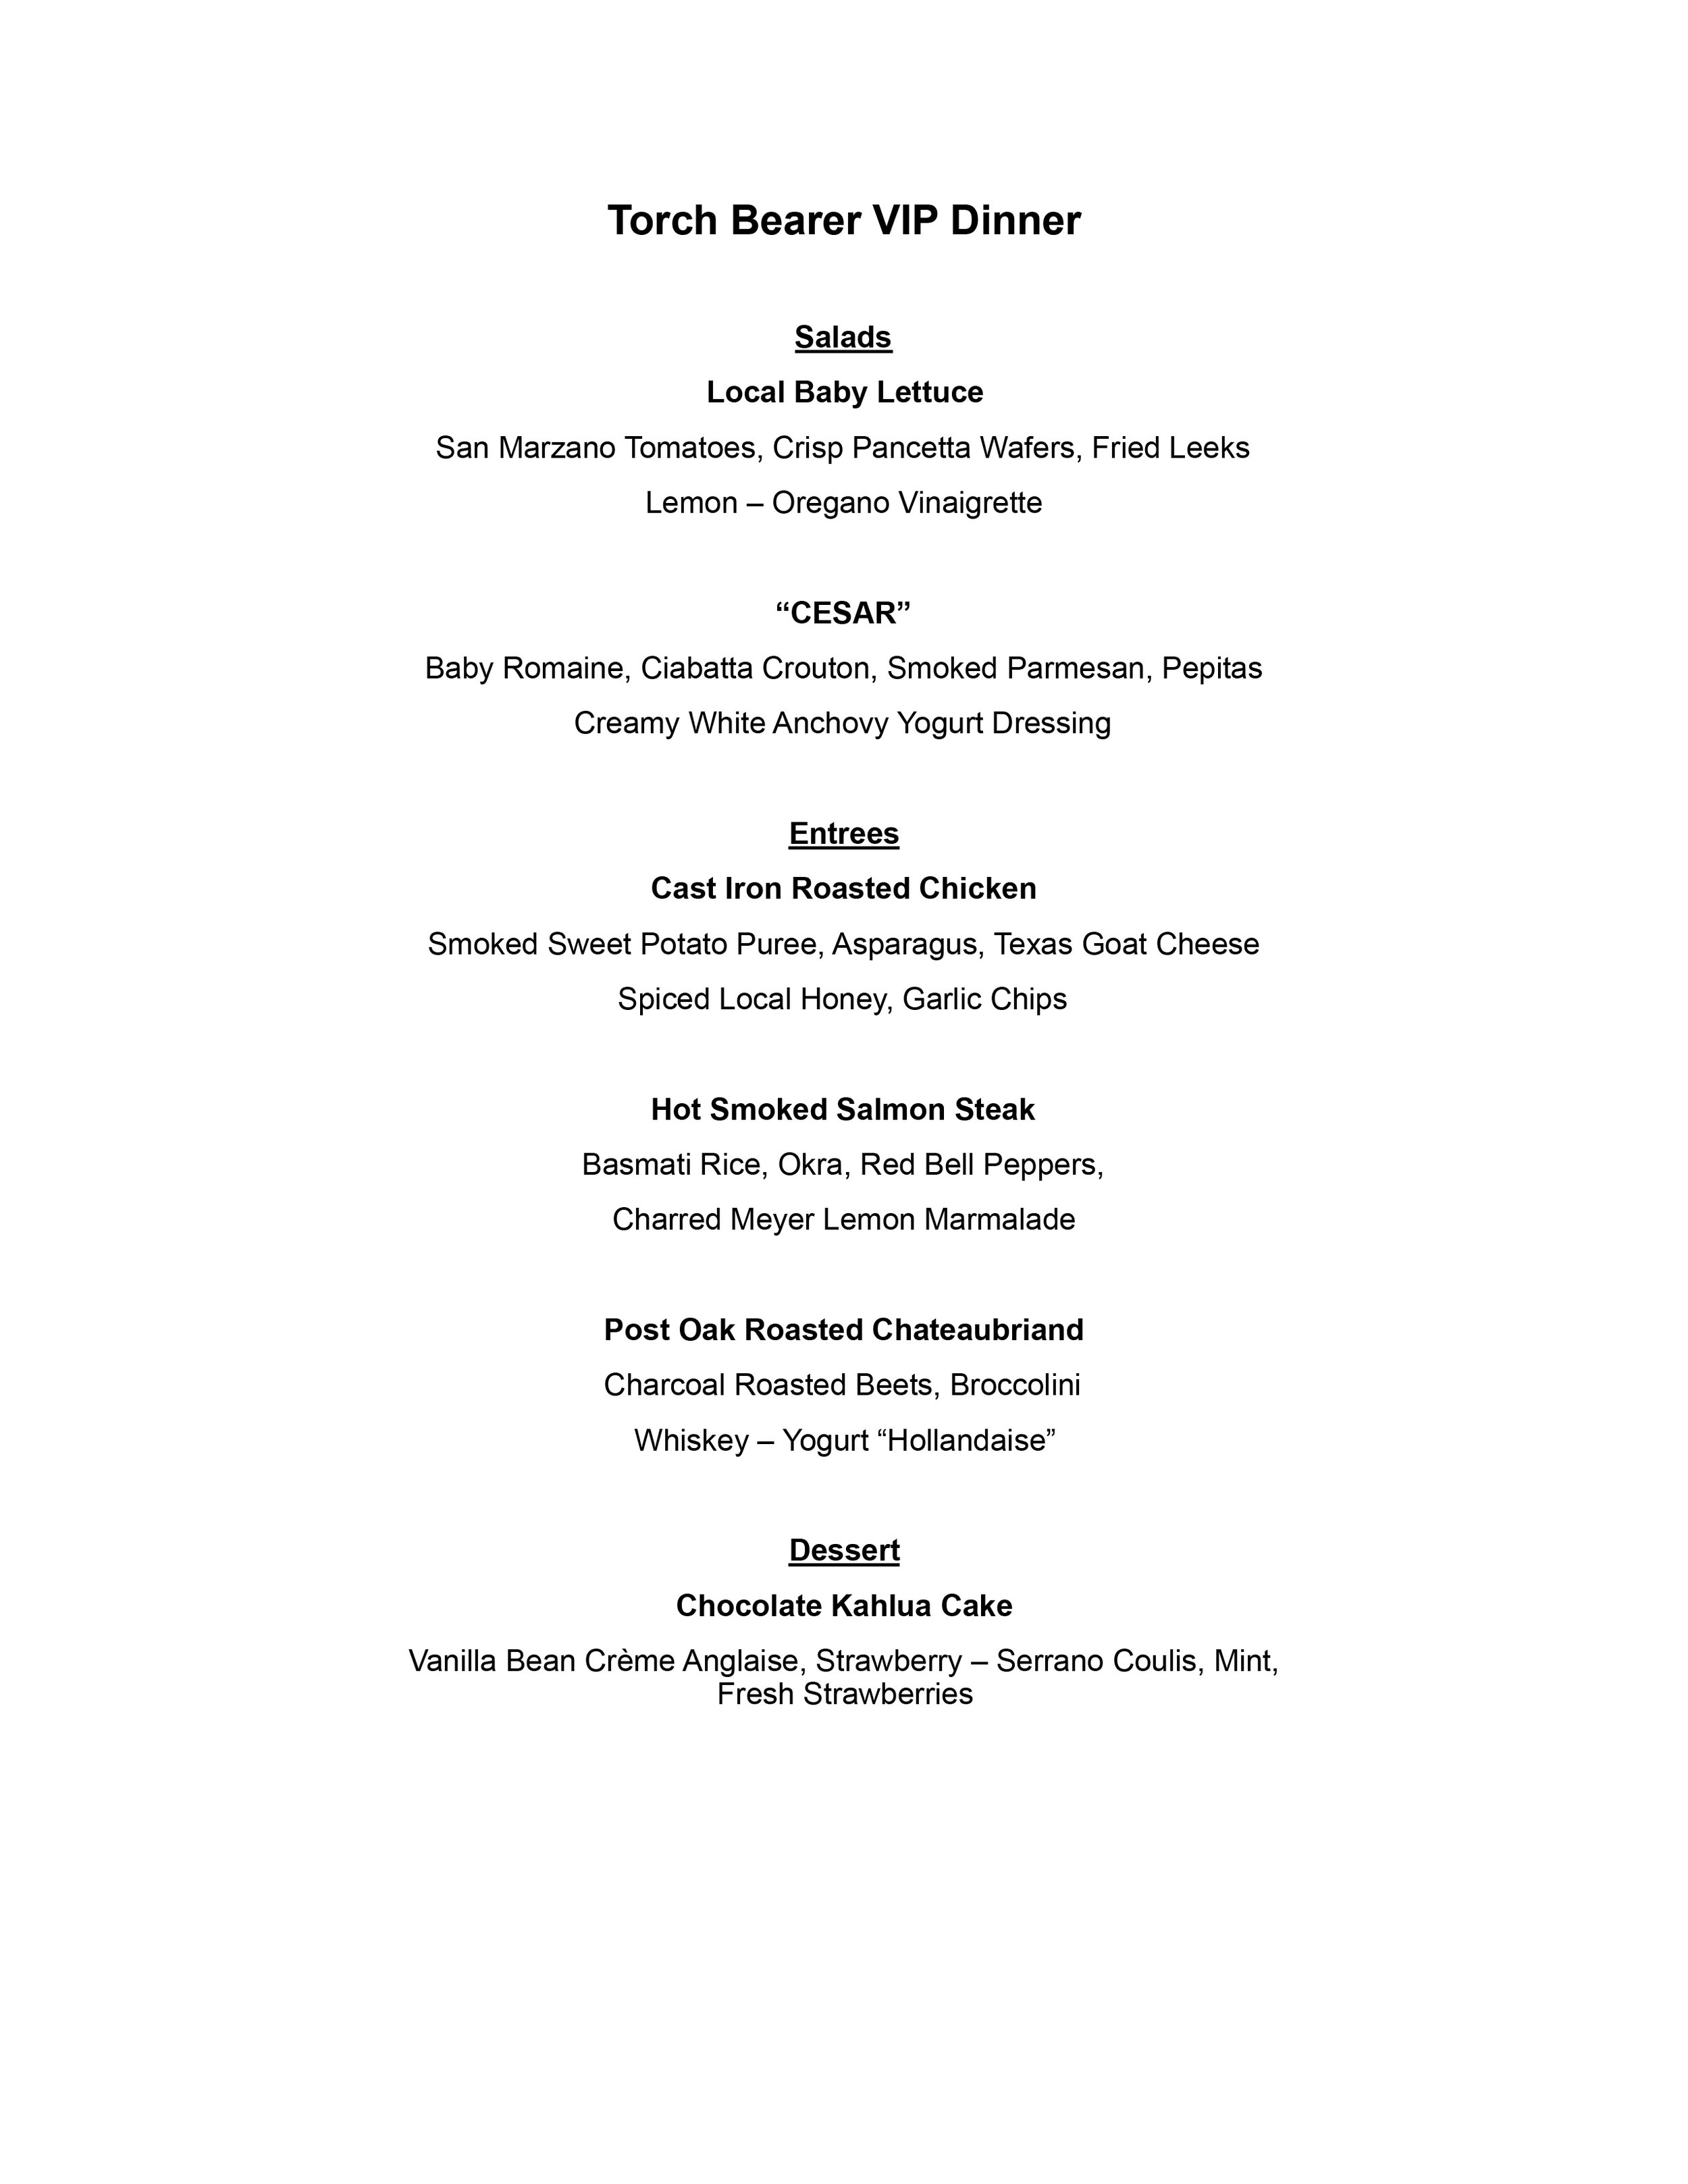 Dinner Menu - by Chef Jason Rolf